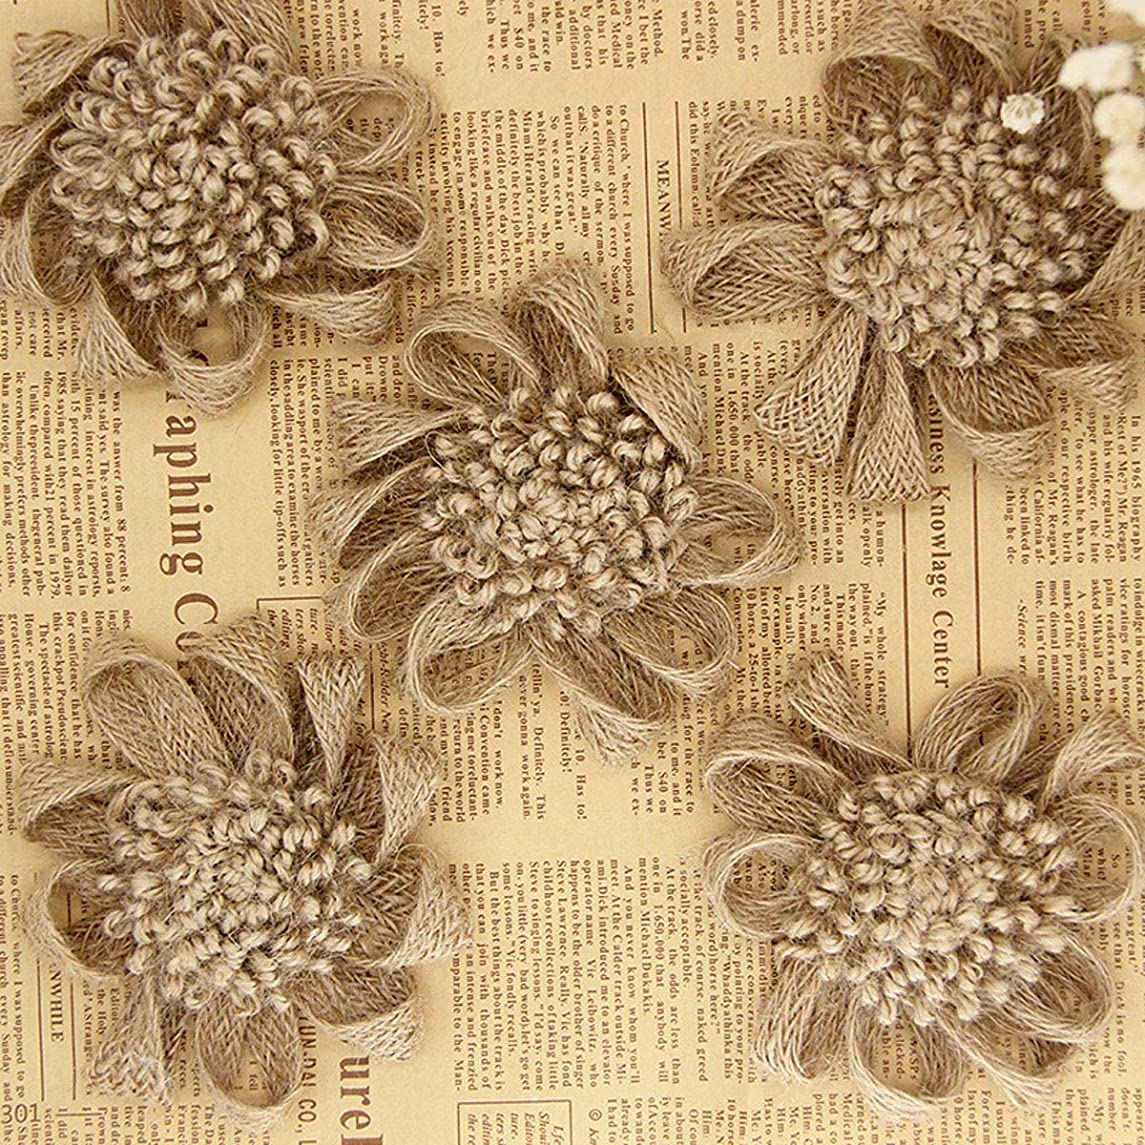 10PCS Burlap Flowers Handmade Crafts Flowers,Natural Hessian Flowers for Handmade Craft Making Wedding and Party Decoration Hair Accessories Scrapbooking (B#)